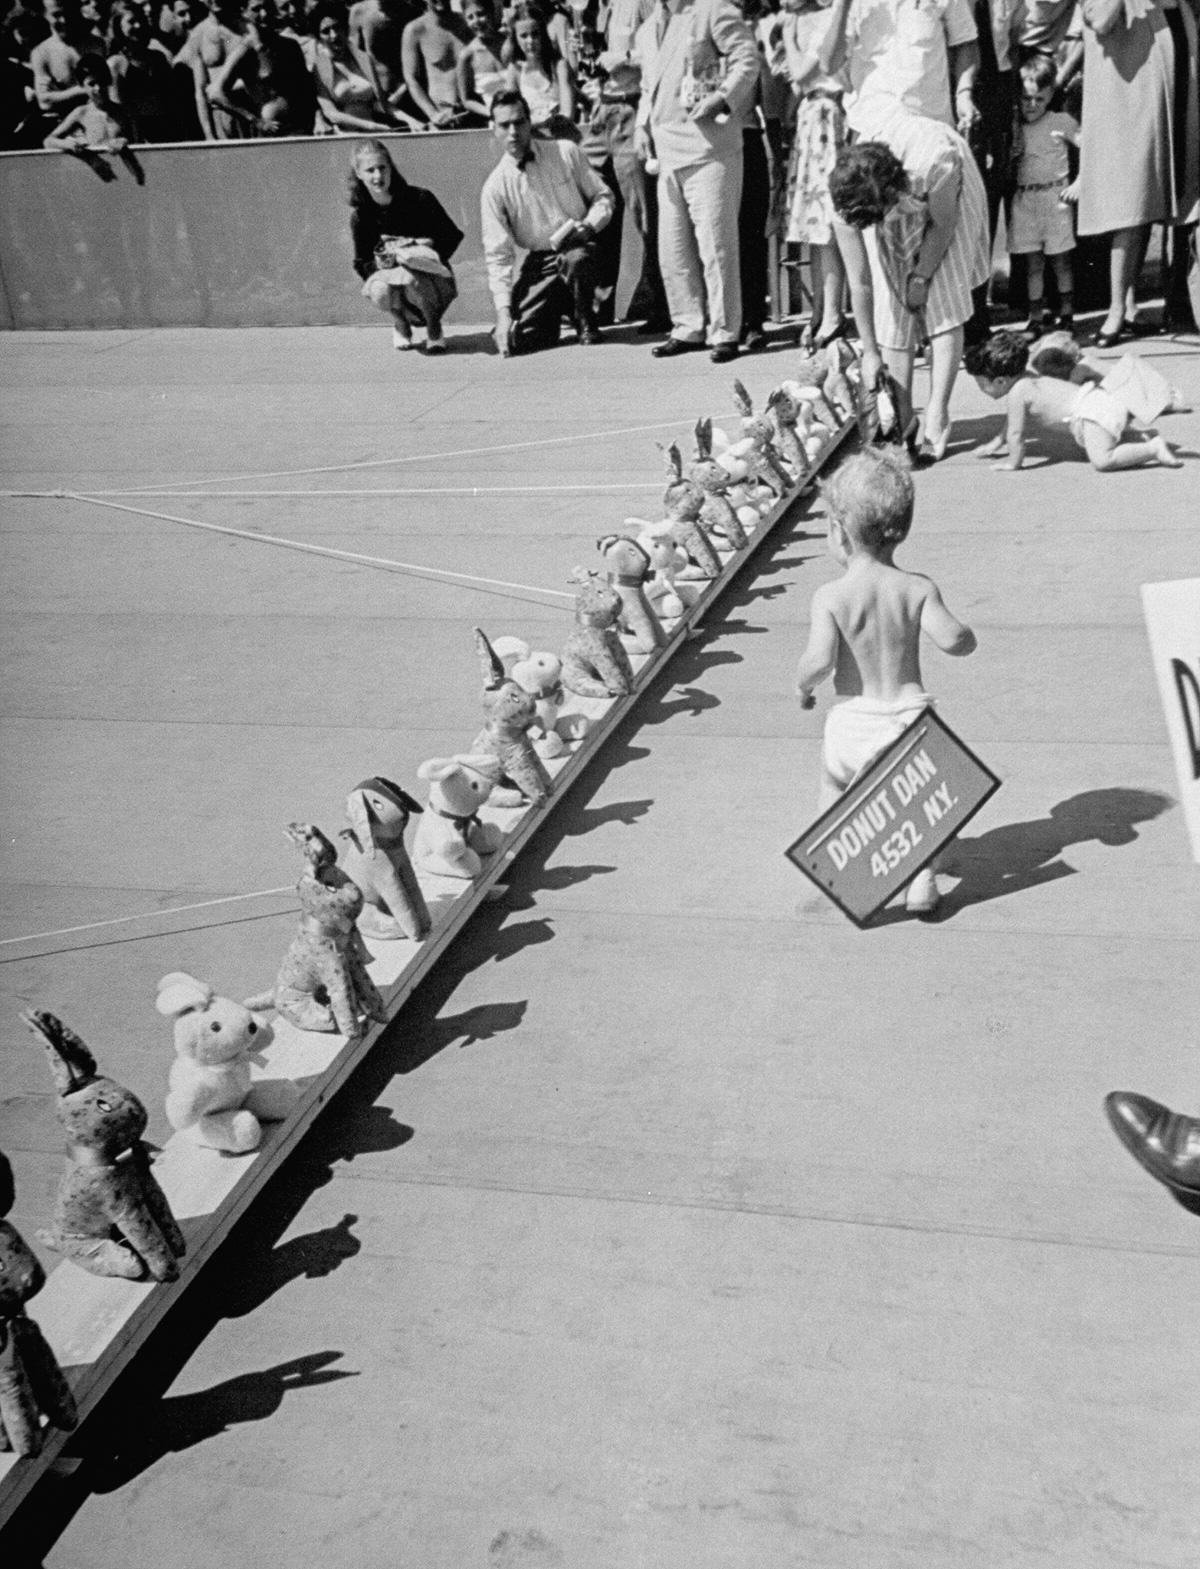 UNILAD CORNELL CAPATHE LIFE PICTURE COLLECTIONGETTY IMAGES 22 Baby Racing Used To Be A Real Life Actual Sport, And It Was Amazing